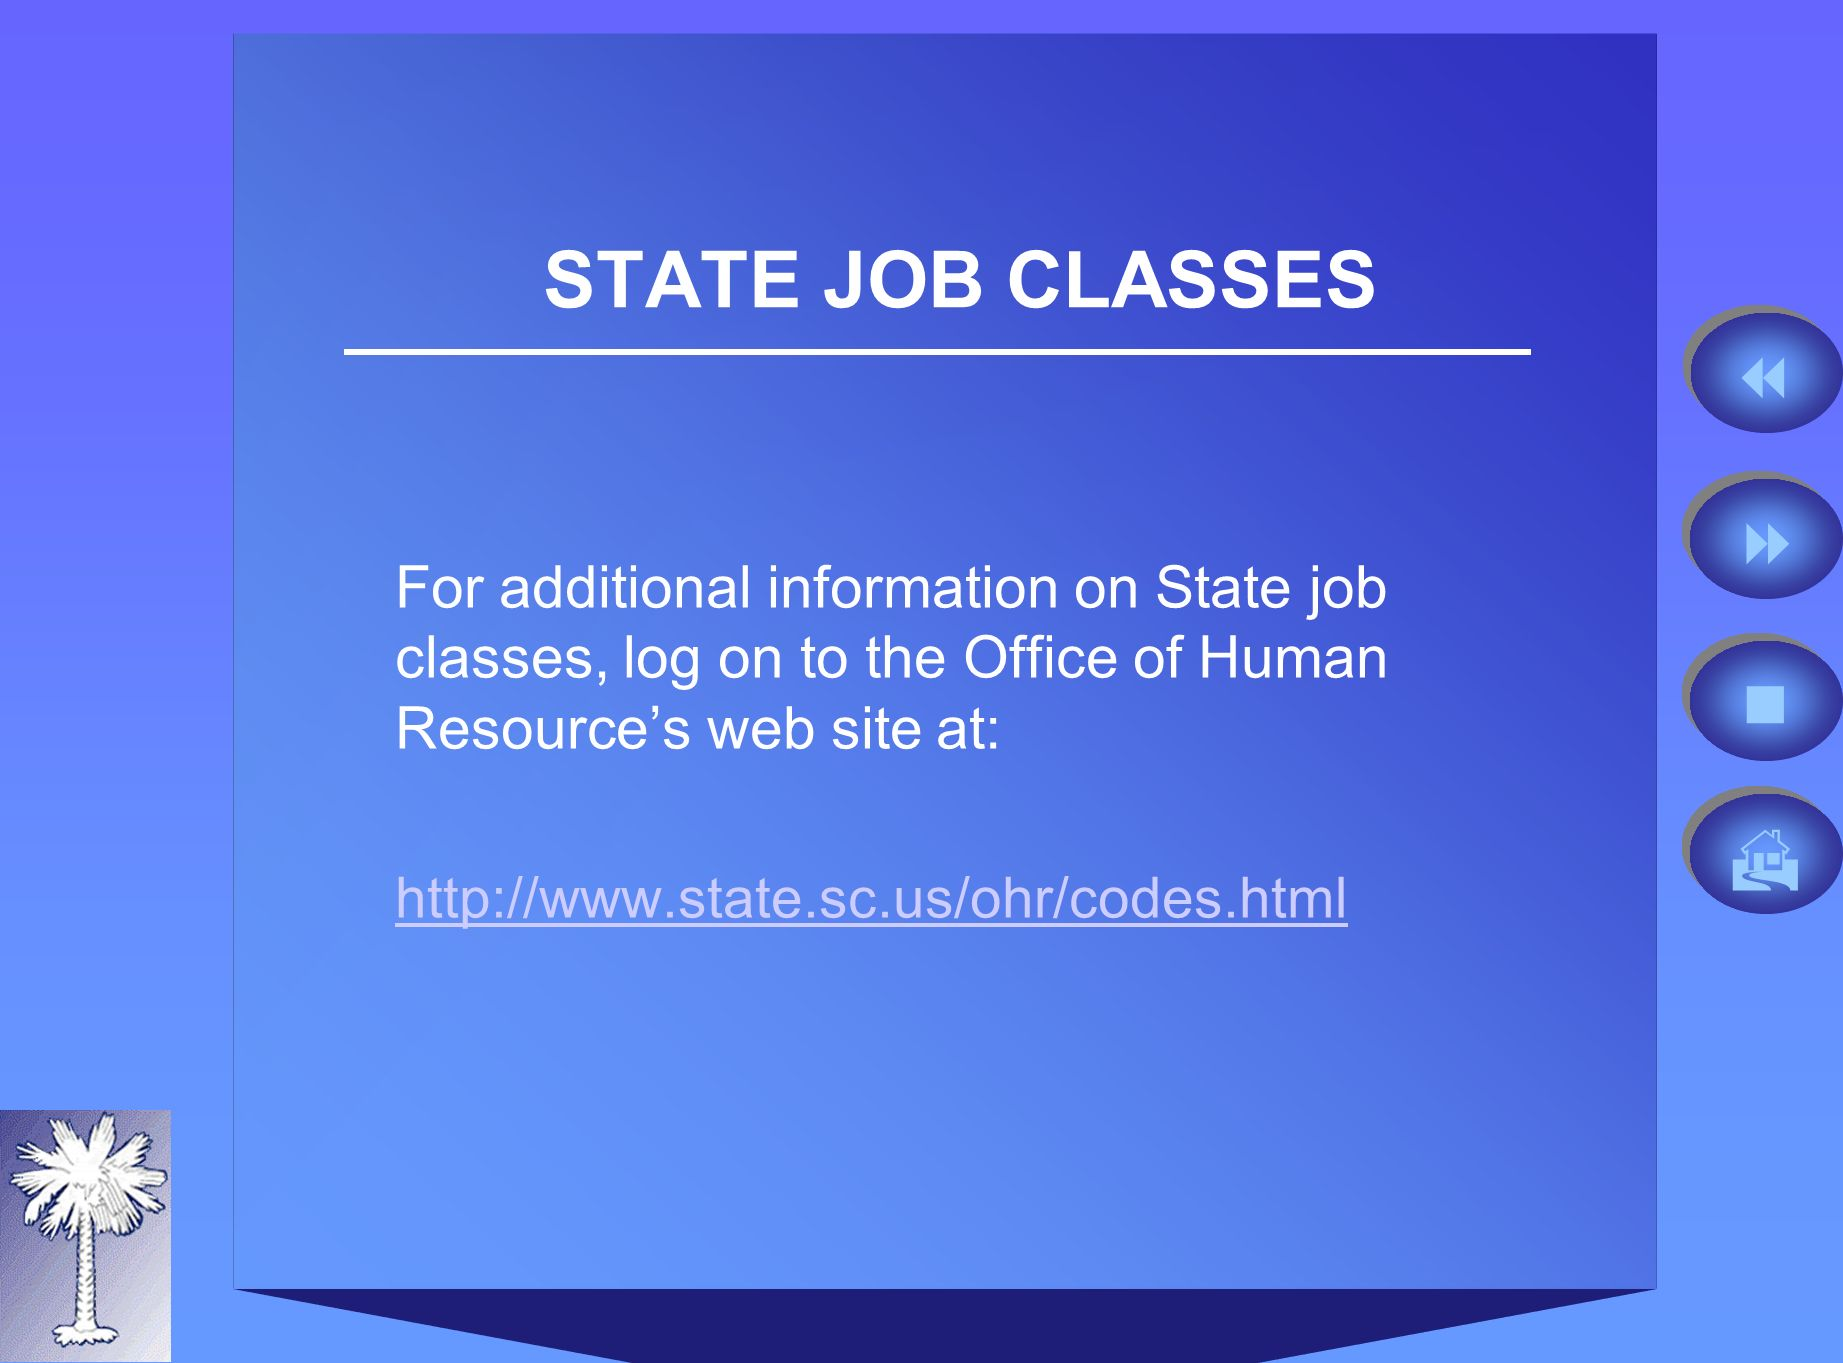 STATE JOB CLASSES For additional information on State job classes, log on to the Office of Human Resources web site at: